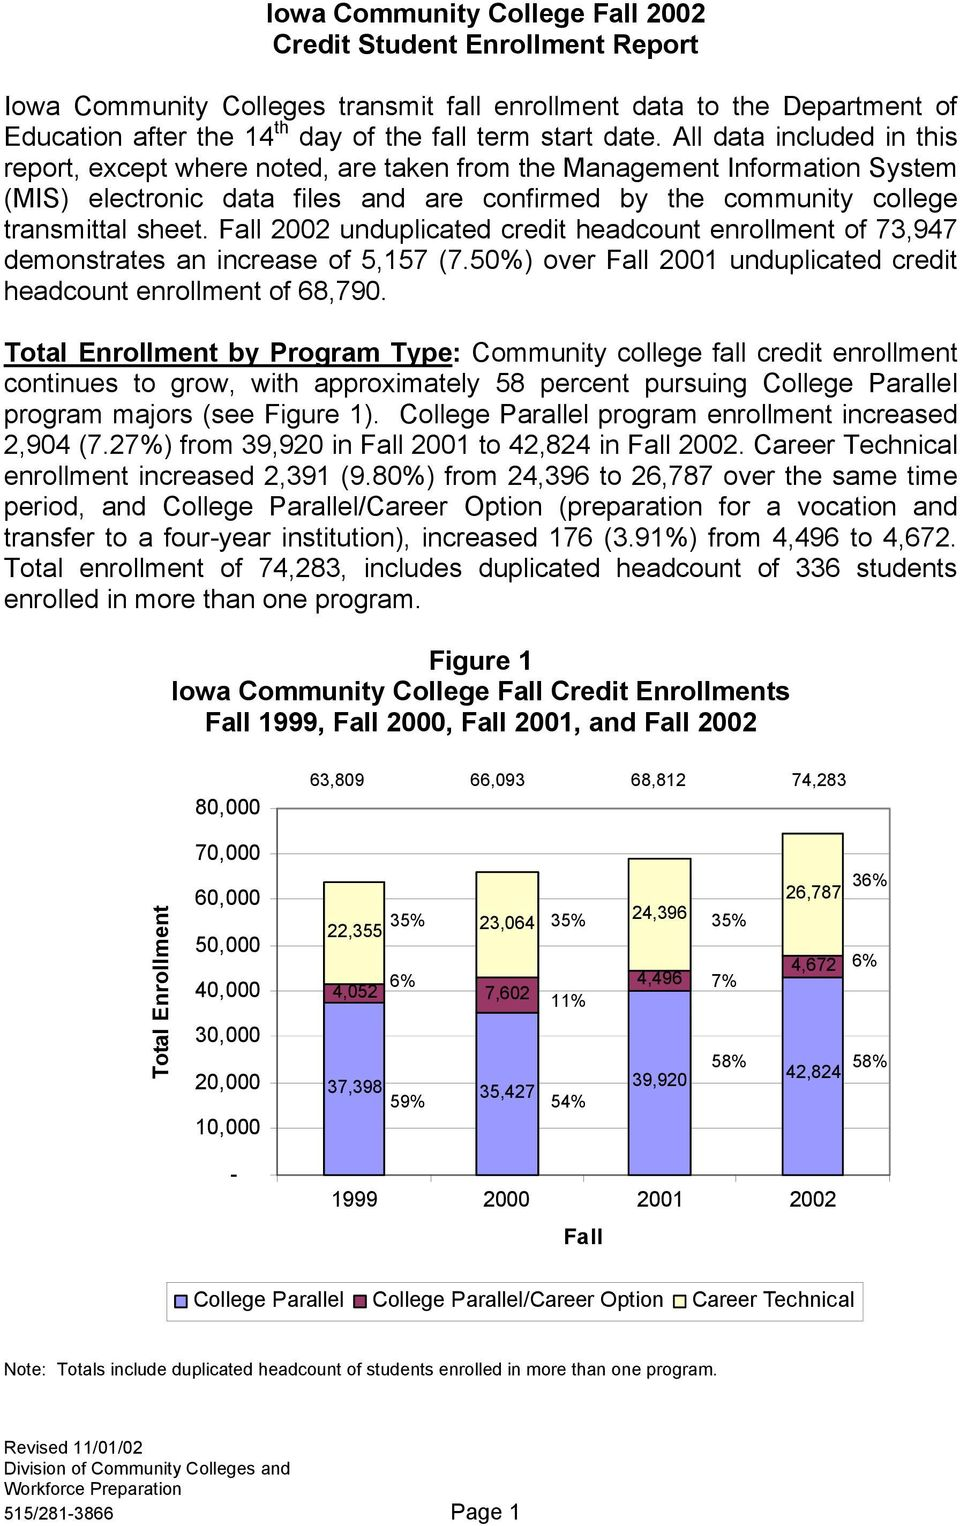 Fall 2002 unduplicated credit headcount enrollment of 73,947 demonstrates an increase of 5,157 (7.50%) over Fall 2001 unduplicated credit headcount enrollment of 68,790.